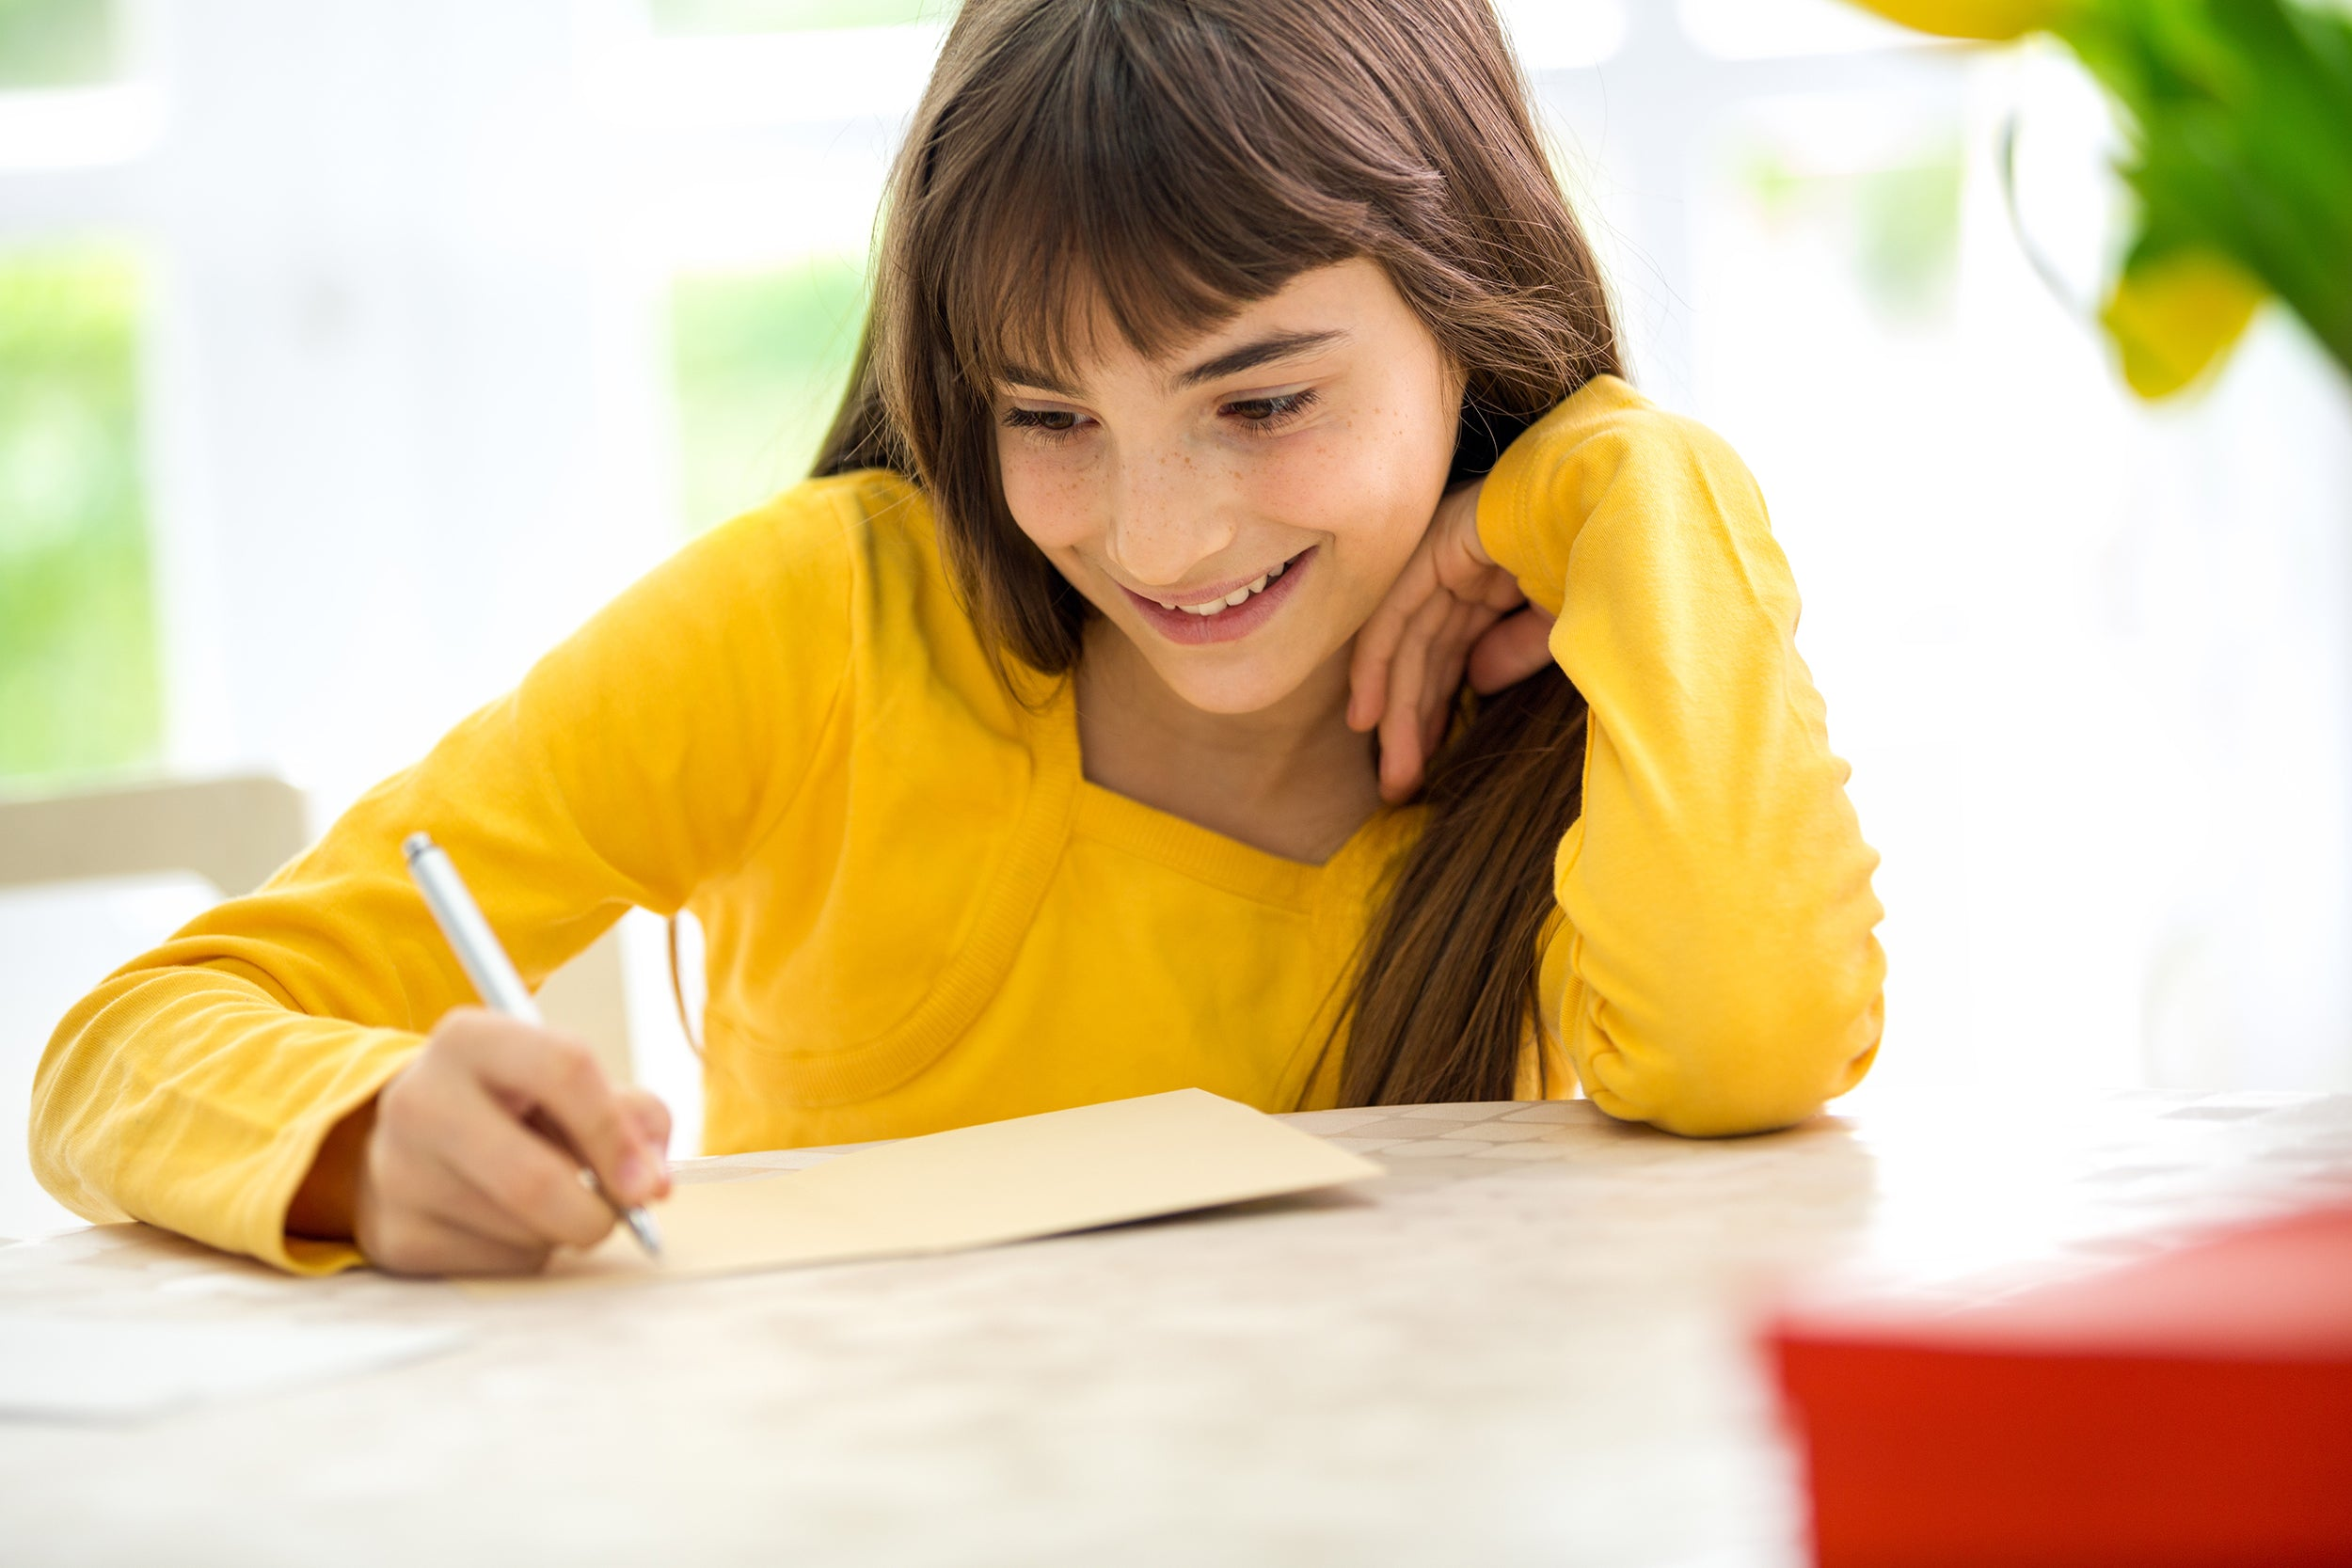 Random Acts of Kindness Ideas for Kids - writing thank you notes